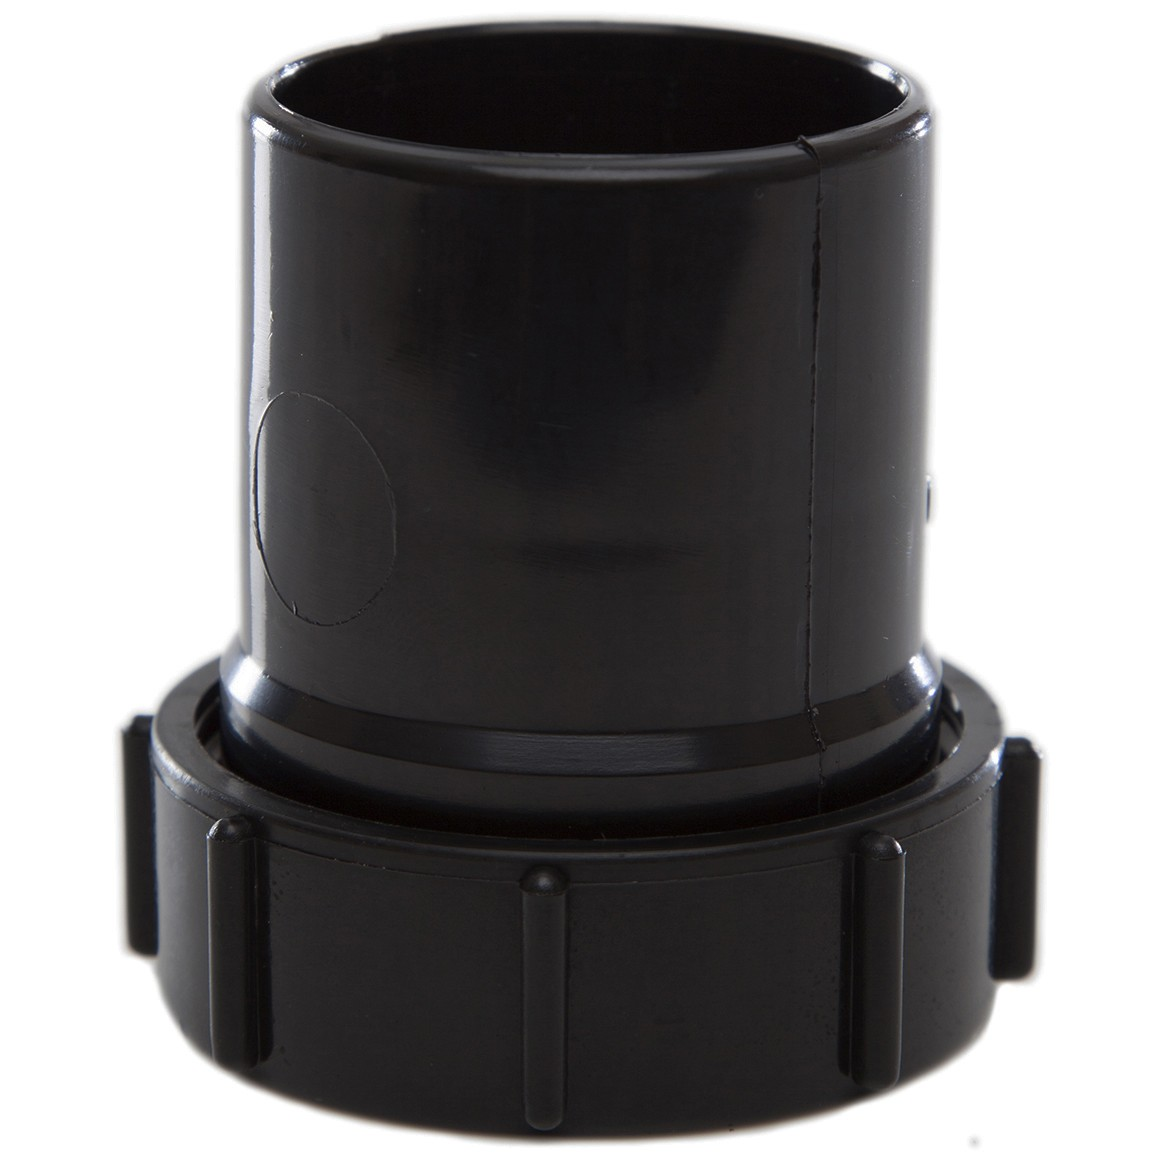 Polypipe 32mm Solvent Weld Waste Expansion Coupler - Black